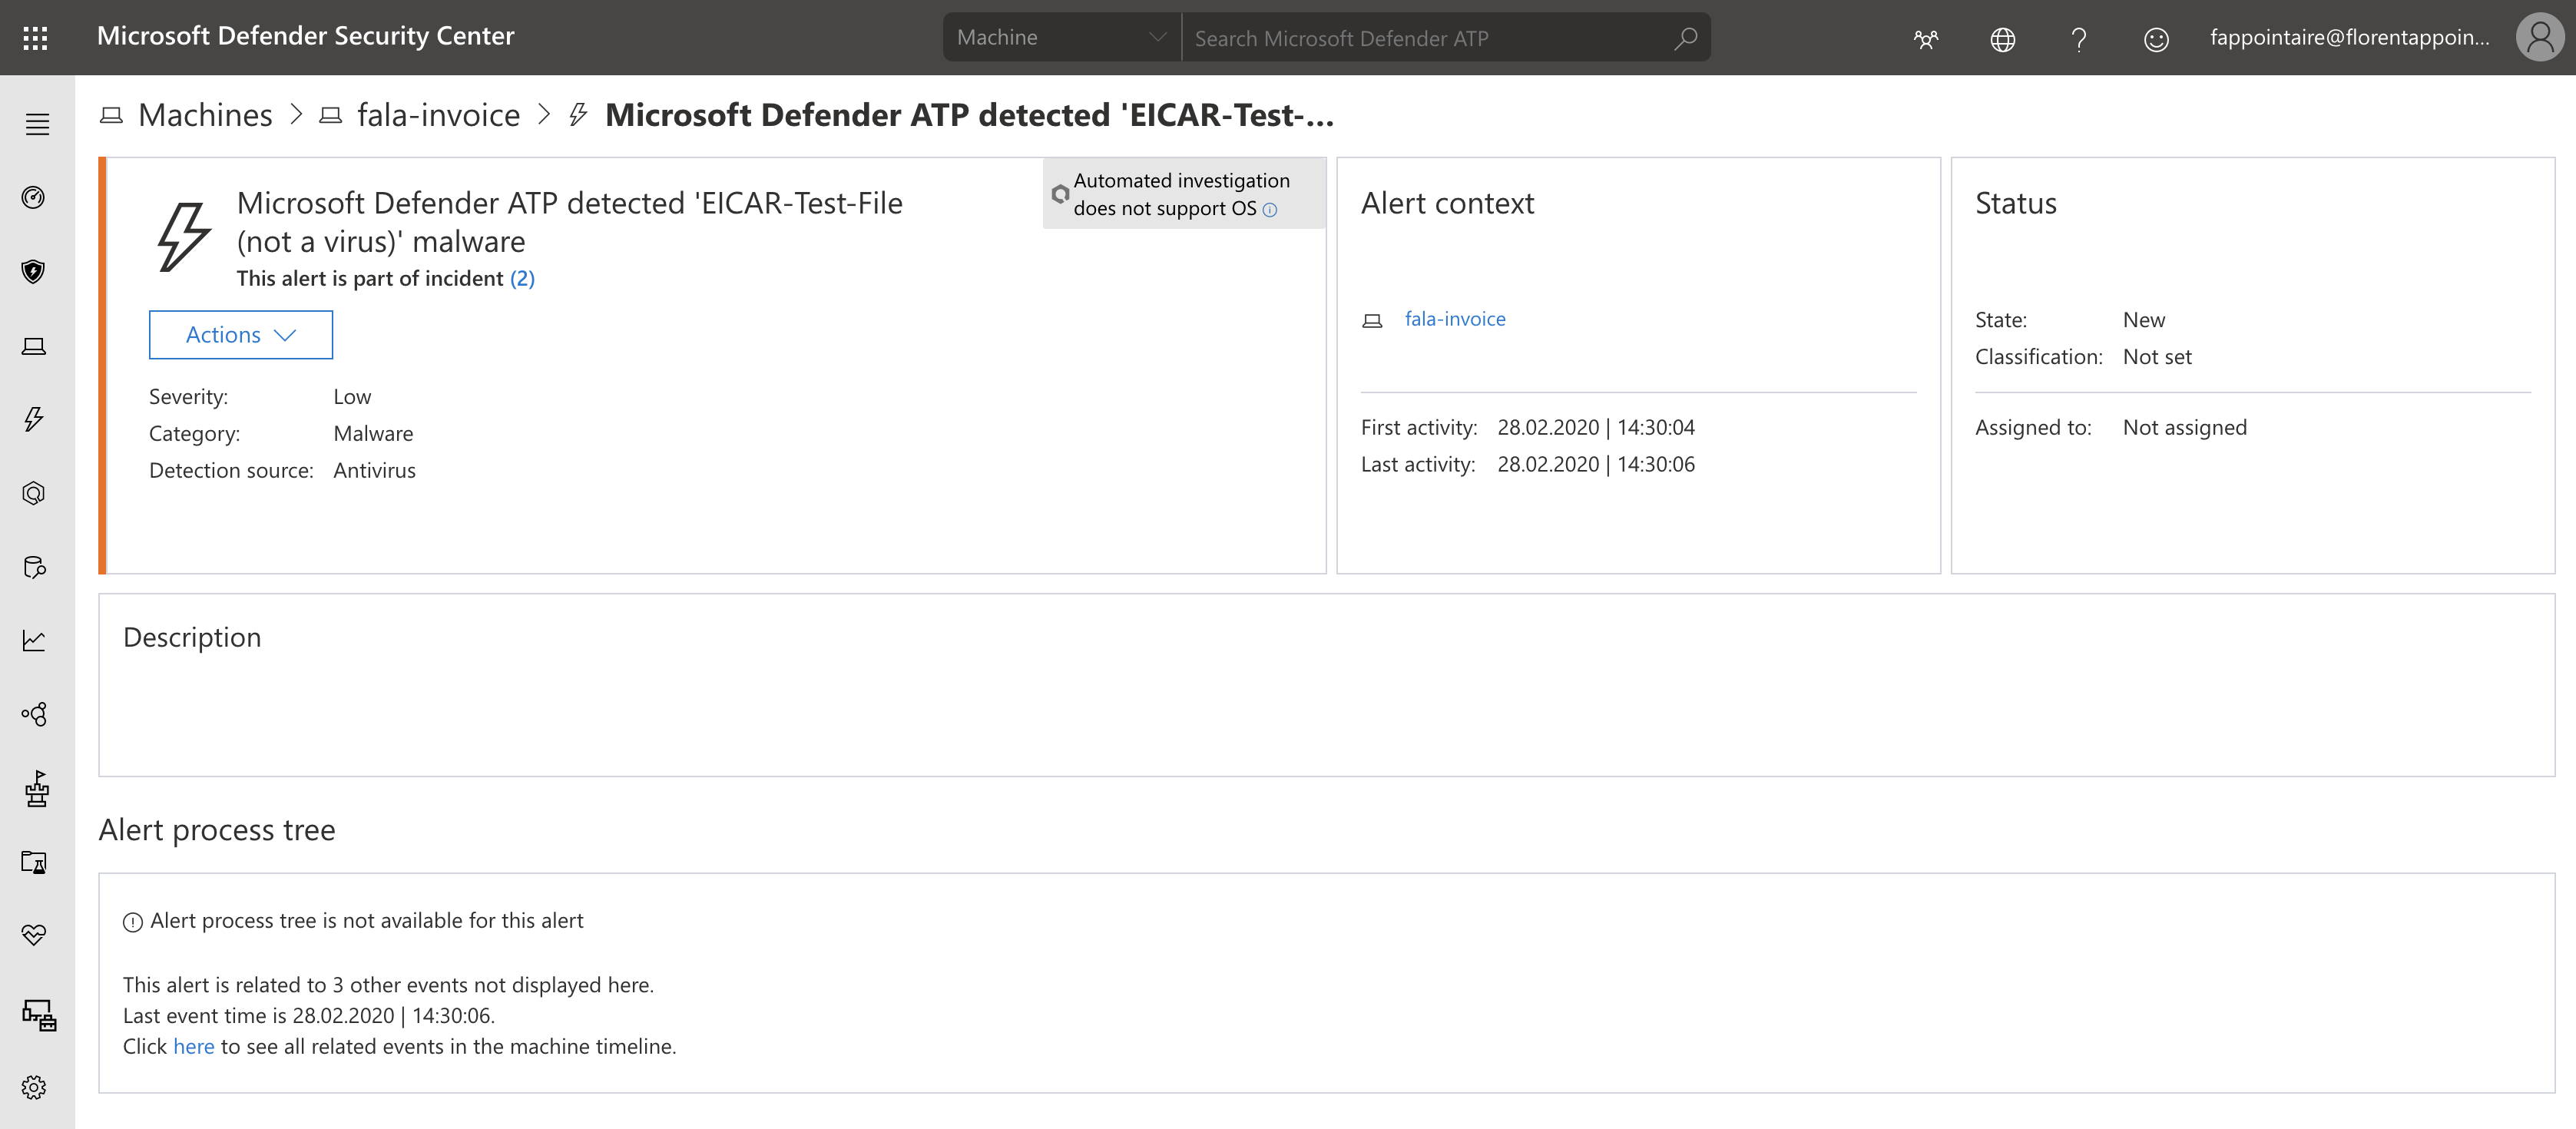 Microsoft Defender ATP detected